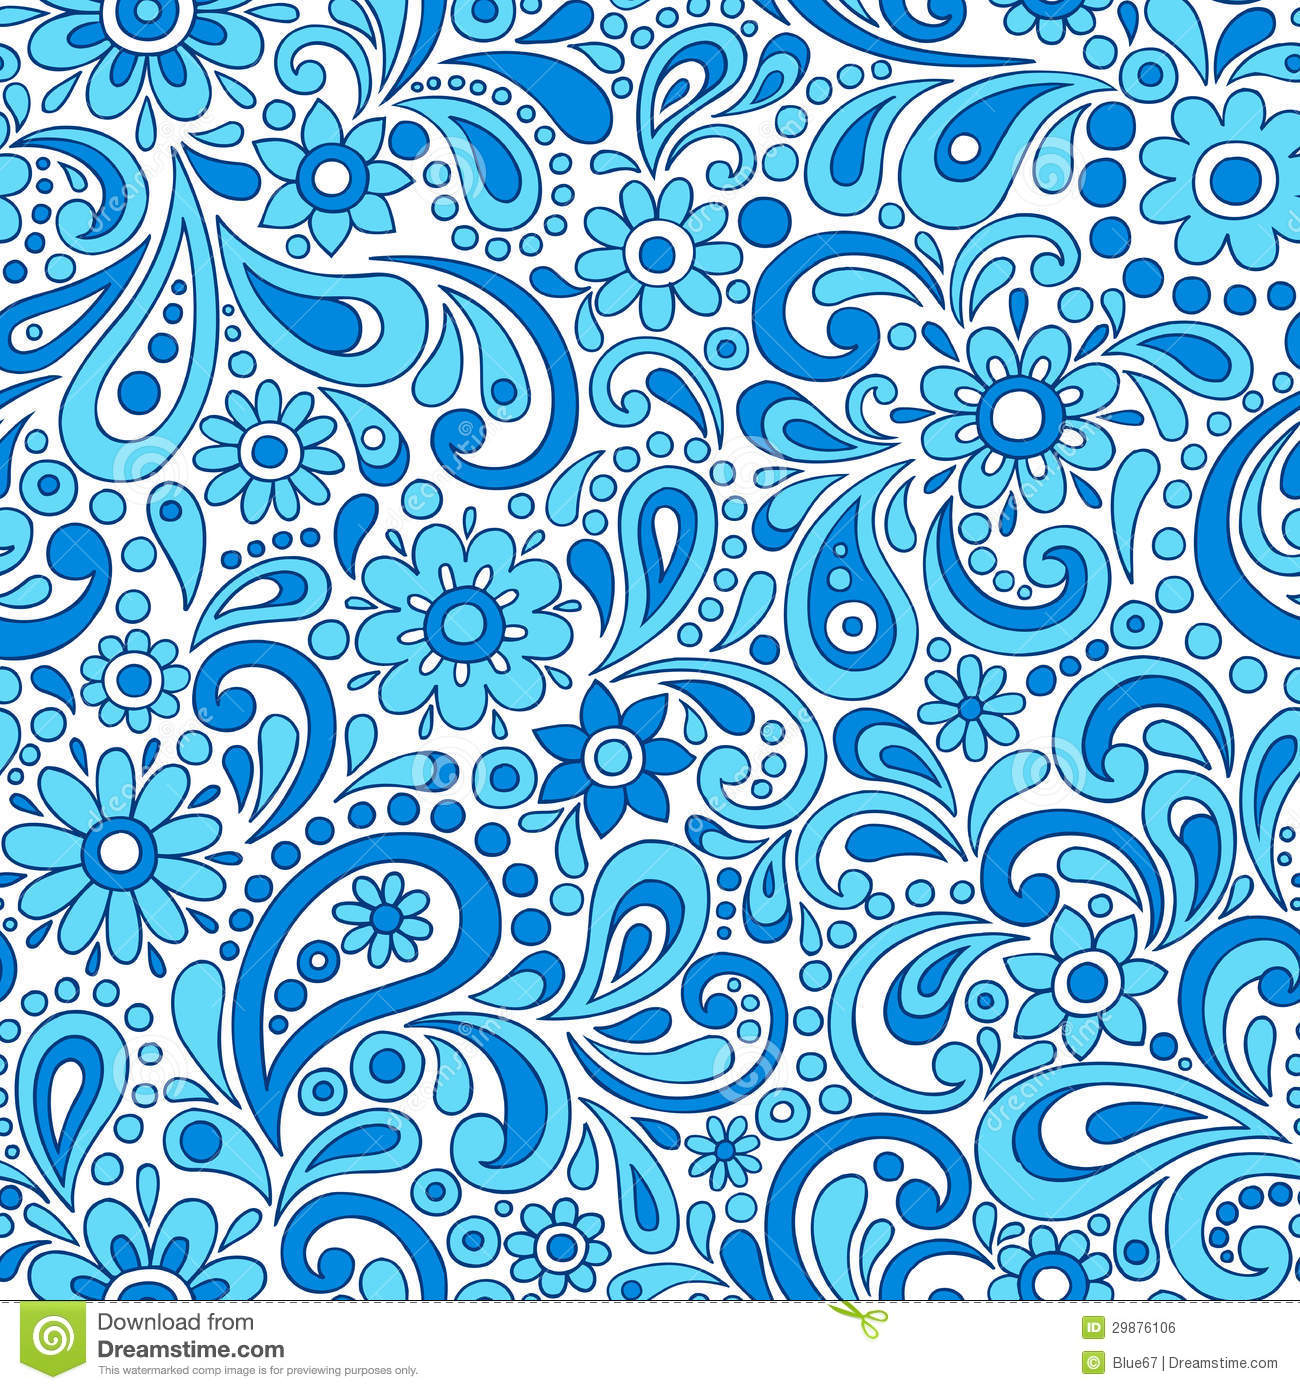 Swirly Floral Pattern Wallpaper Wide Wallpaper Collections